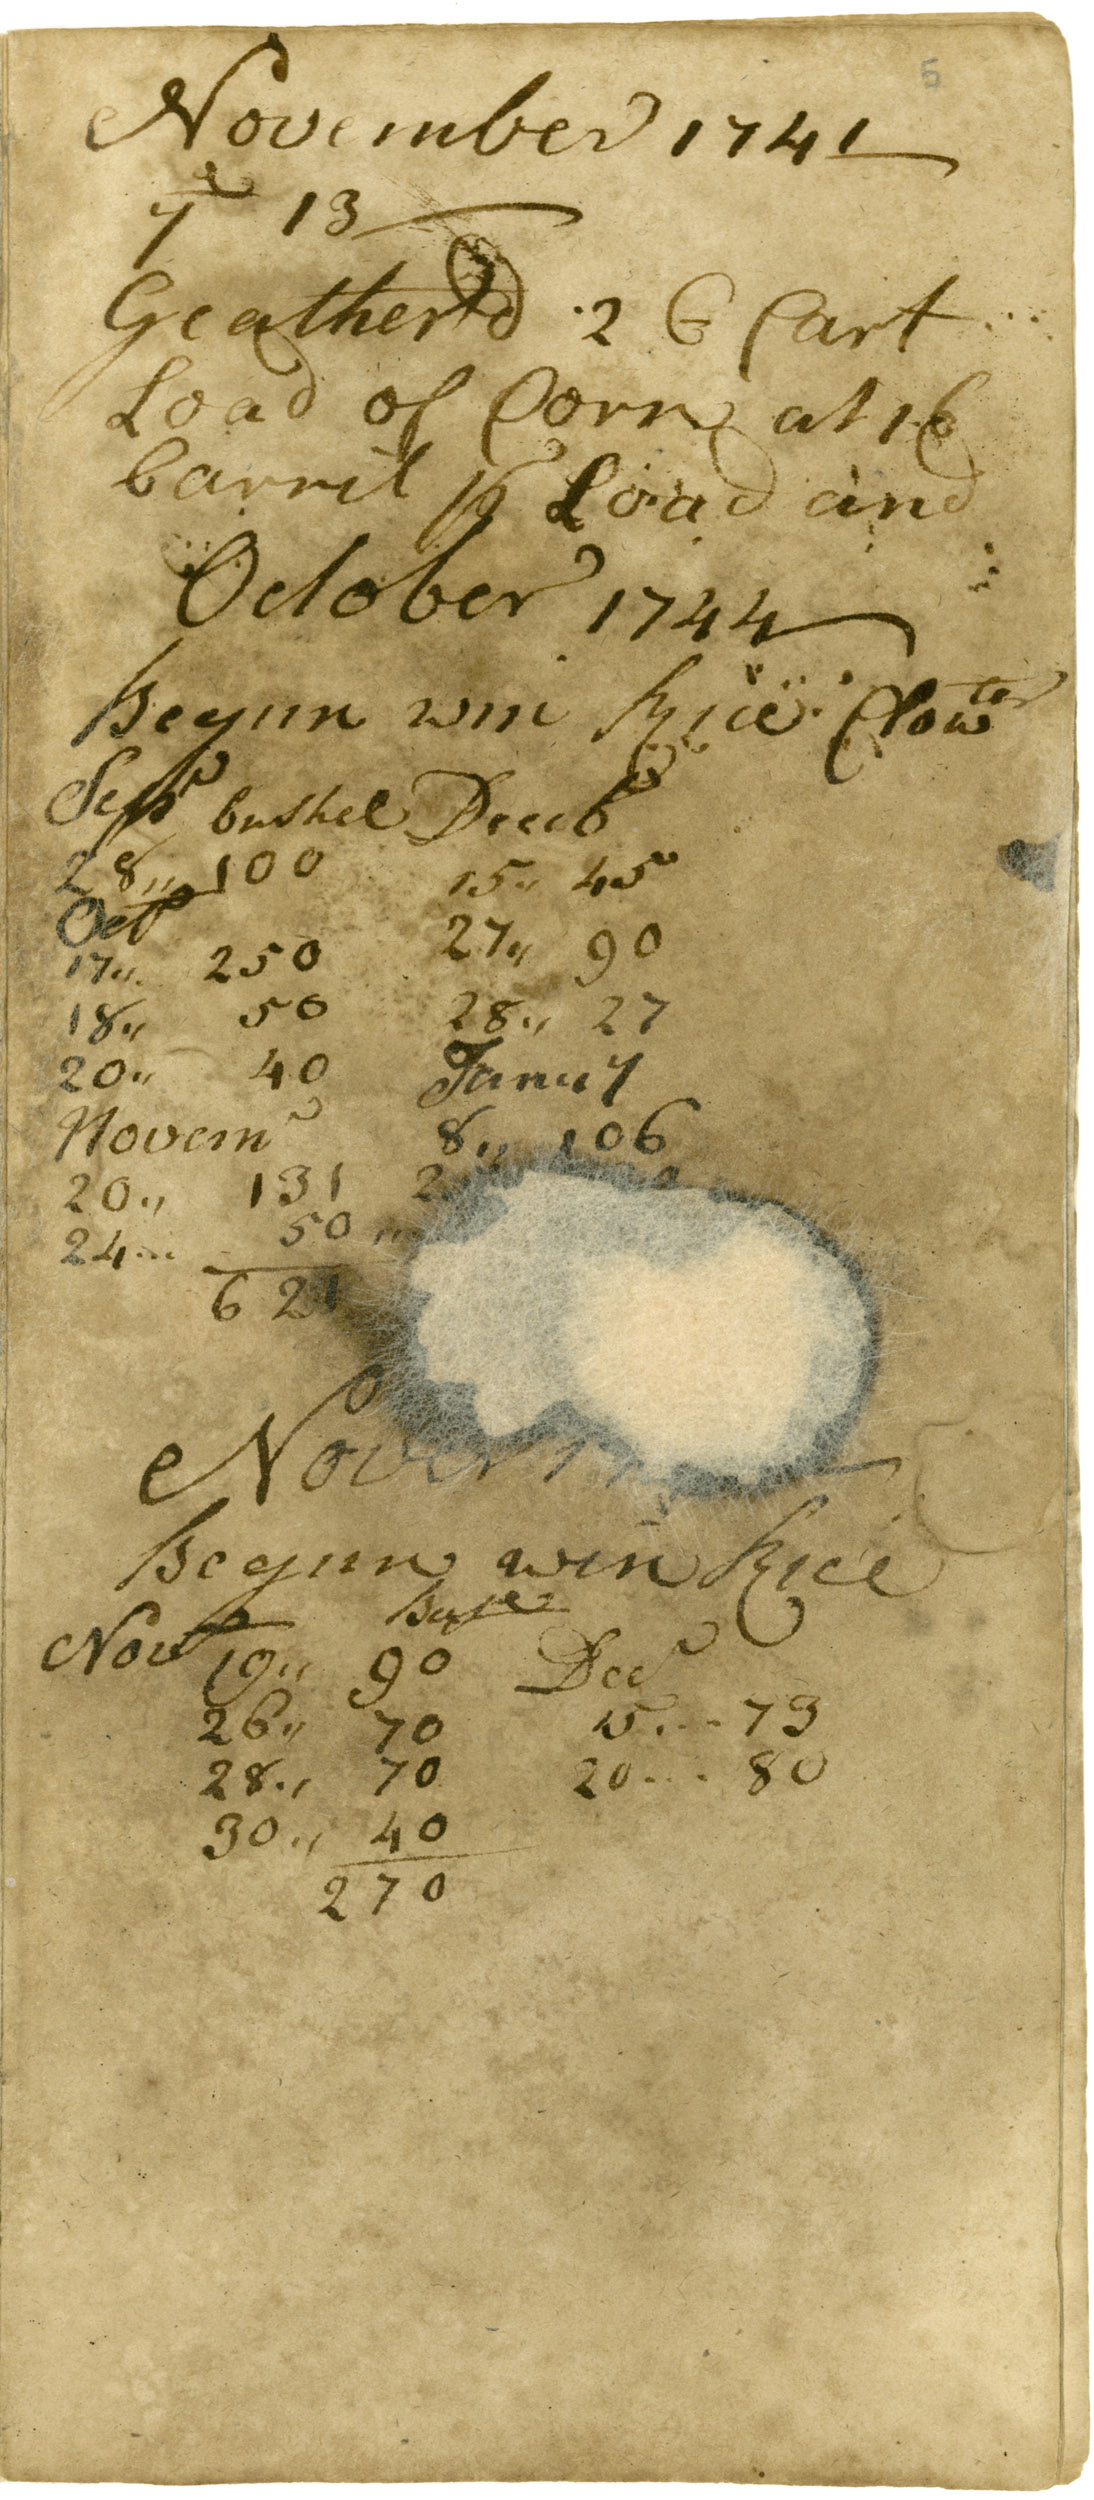 Ravenel Diary 1731-1860, page 4